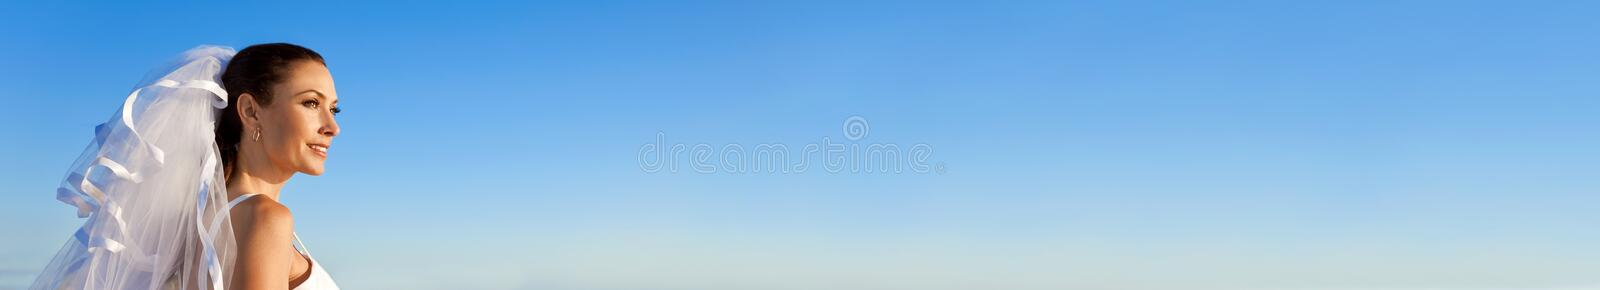 Panoramic Web Banner Bride Wearing Wedding Dress With Blue Sky stock image